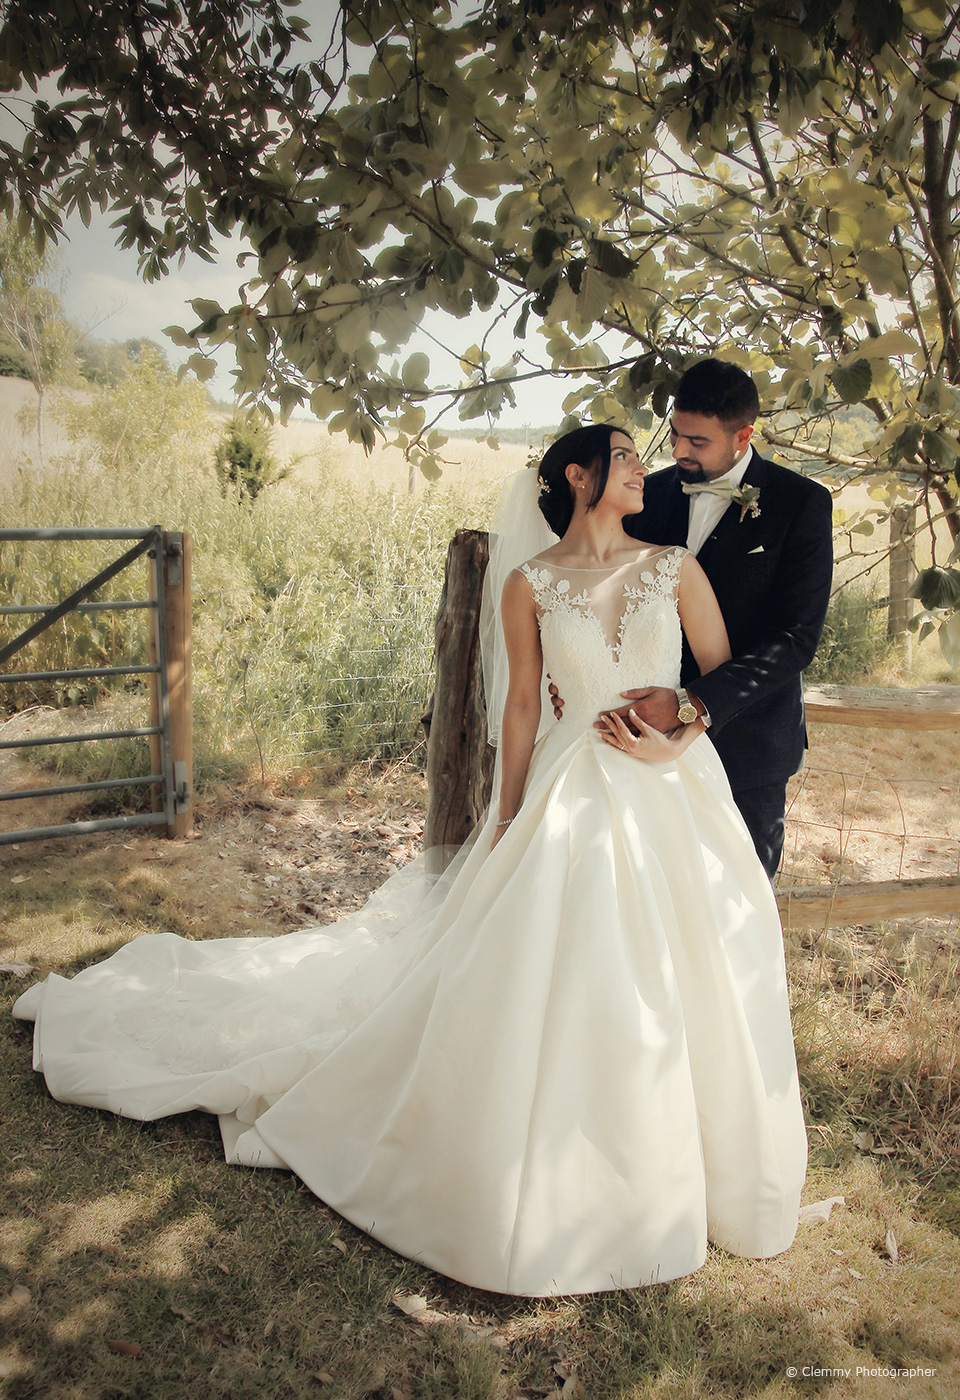 The bride and groom explore the countryside that surrounds Upwaltham Barns on their wedding day